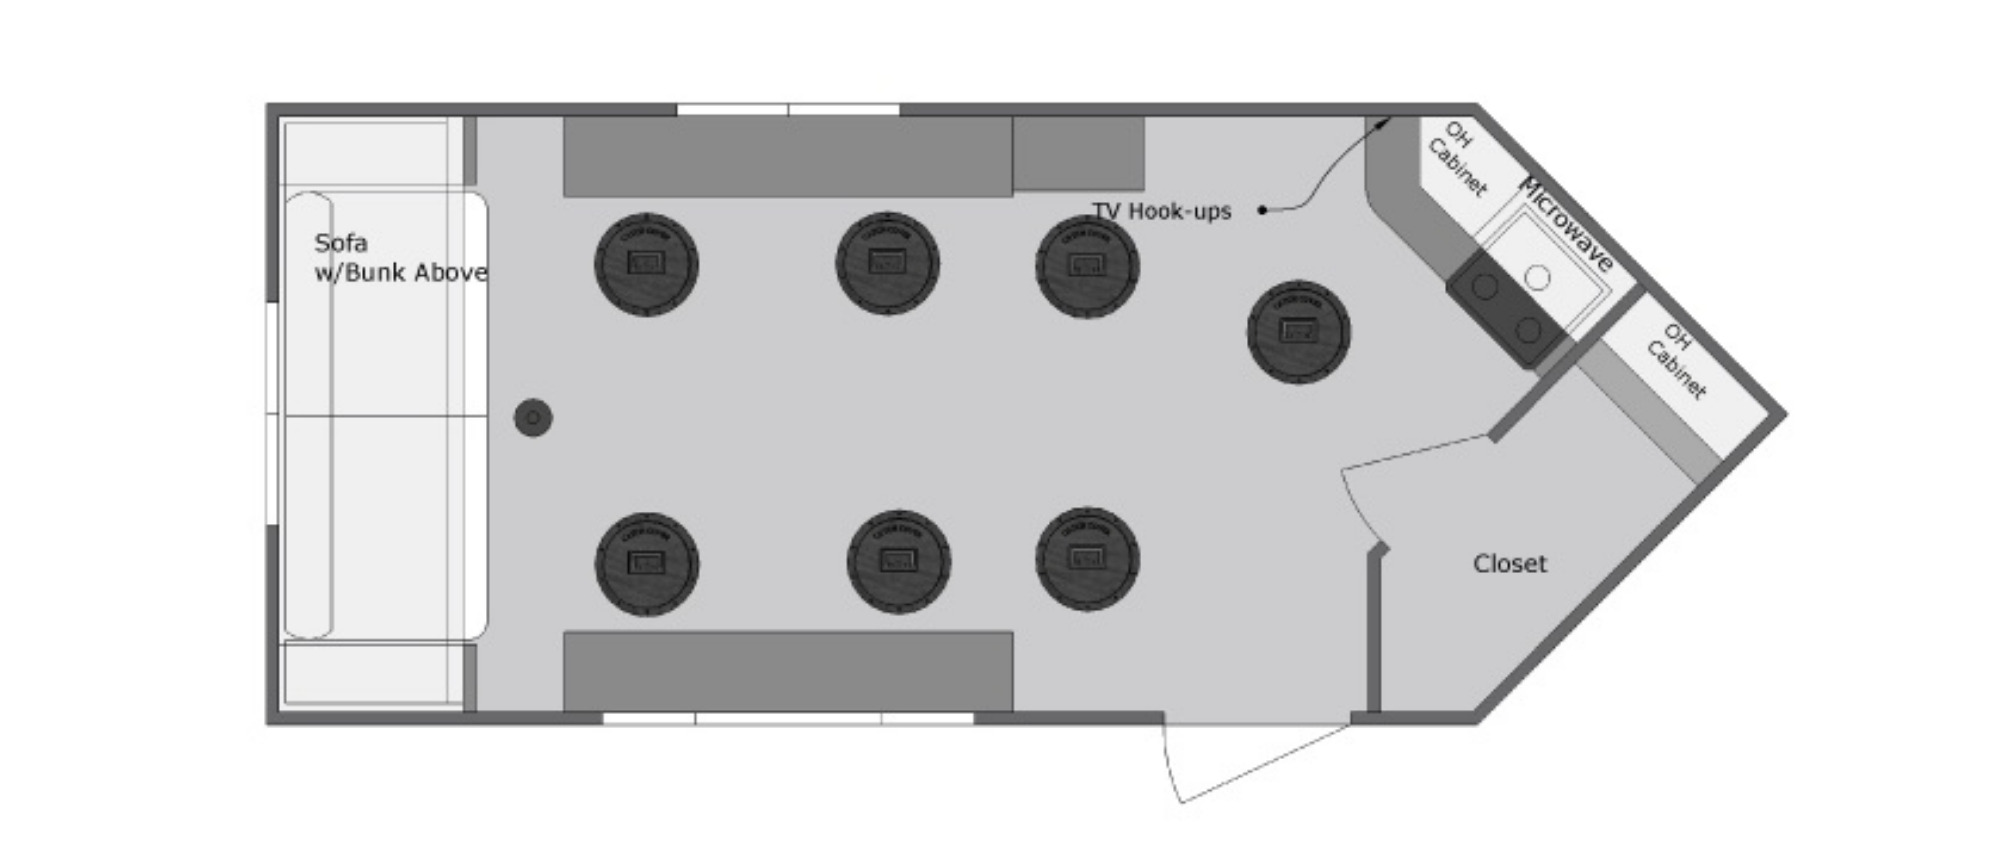 View Floor Plan for 2020 VOYAGER YETTI A816-DK